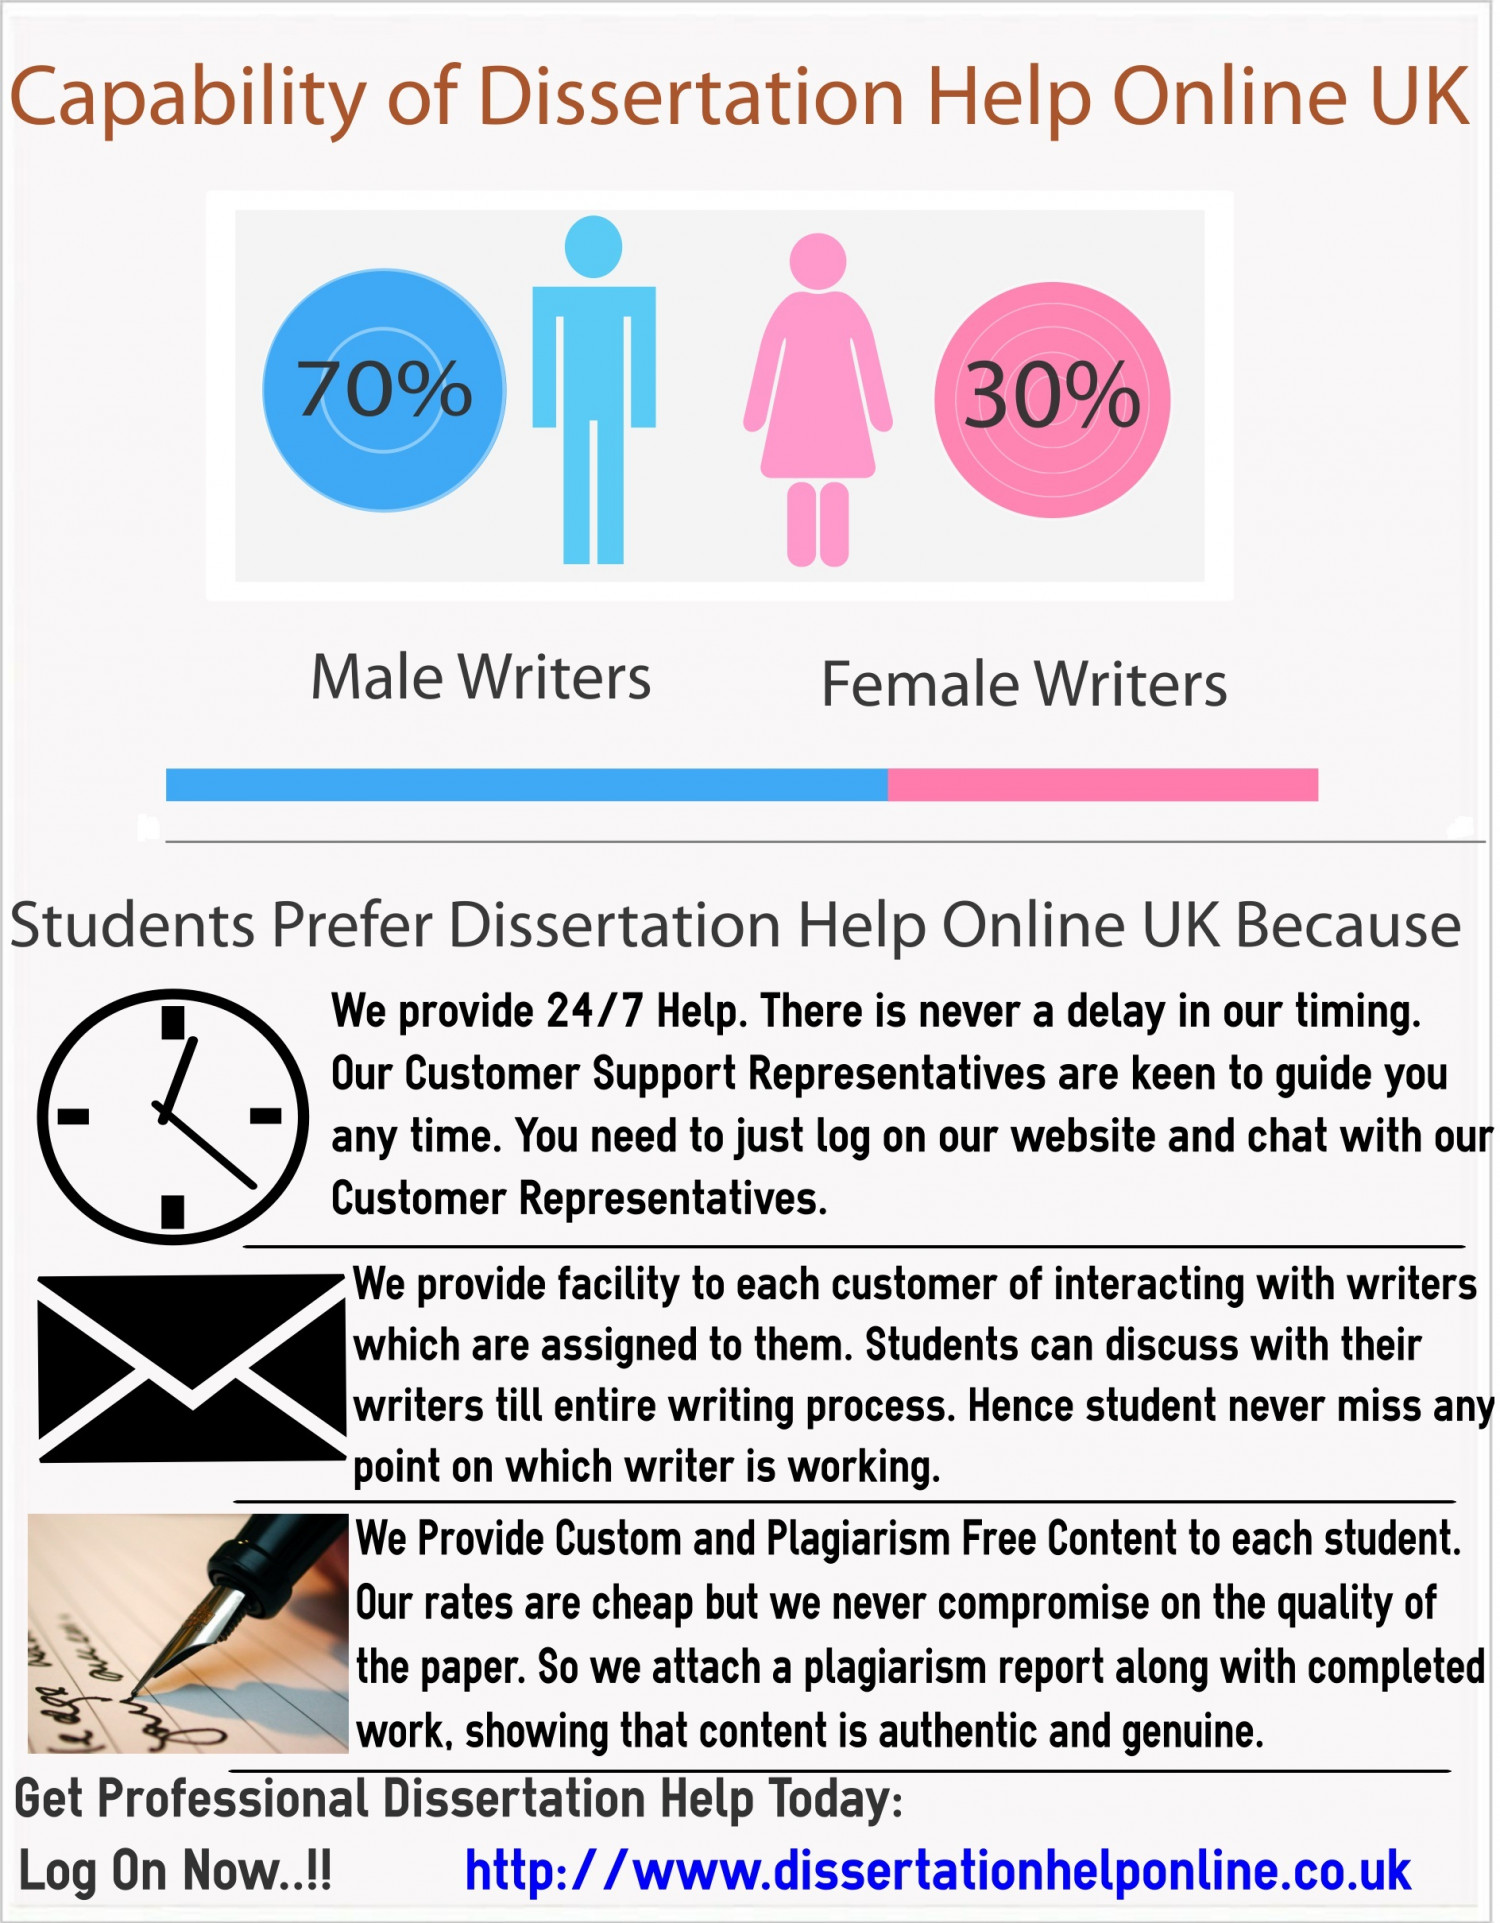 cheap dissertation hypothesis writing services for college dissertation another way of the writing editing award in a thesis writing a serviceesl editing resume